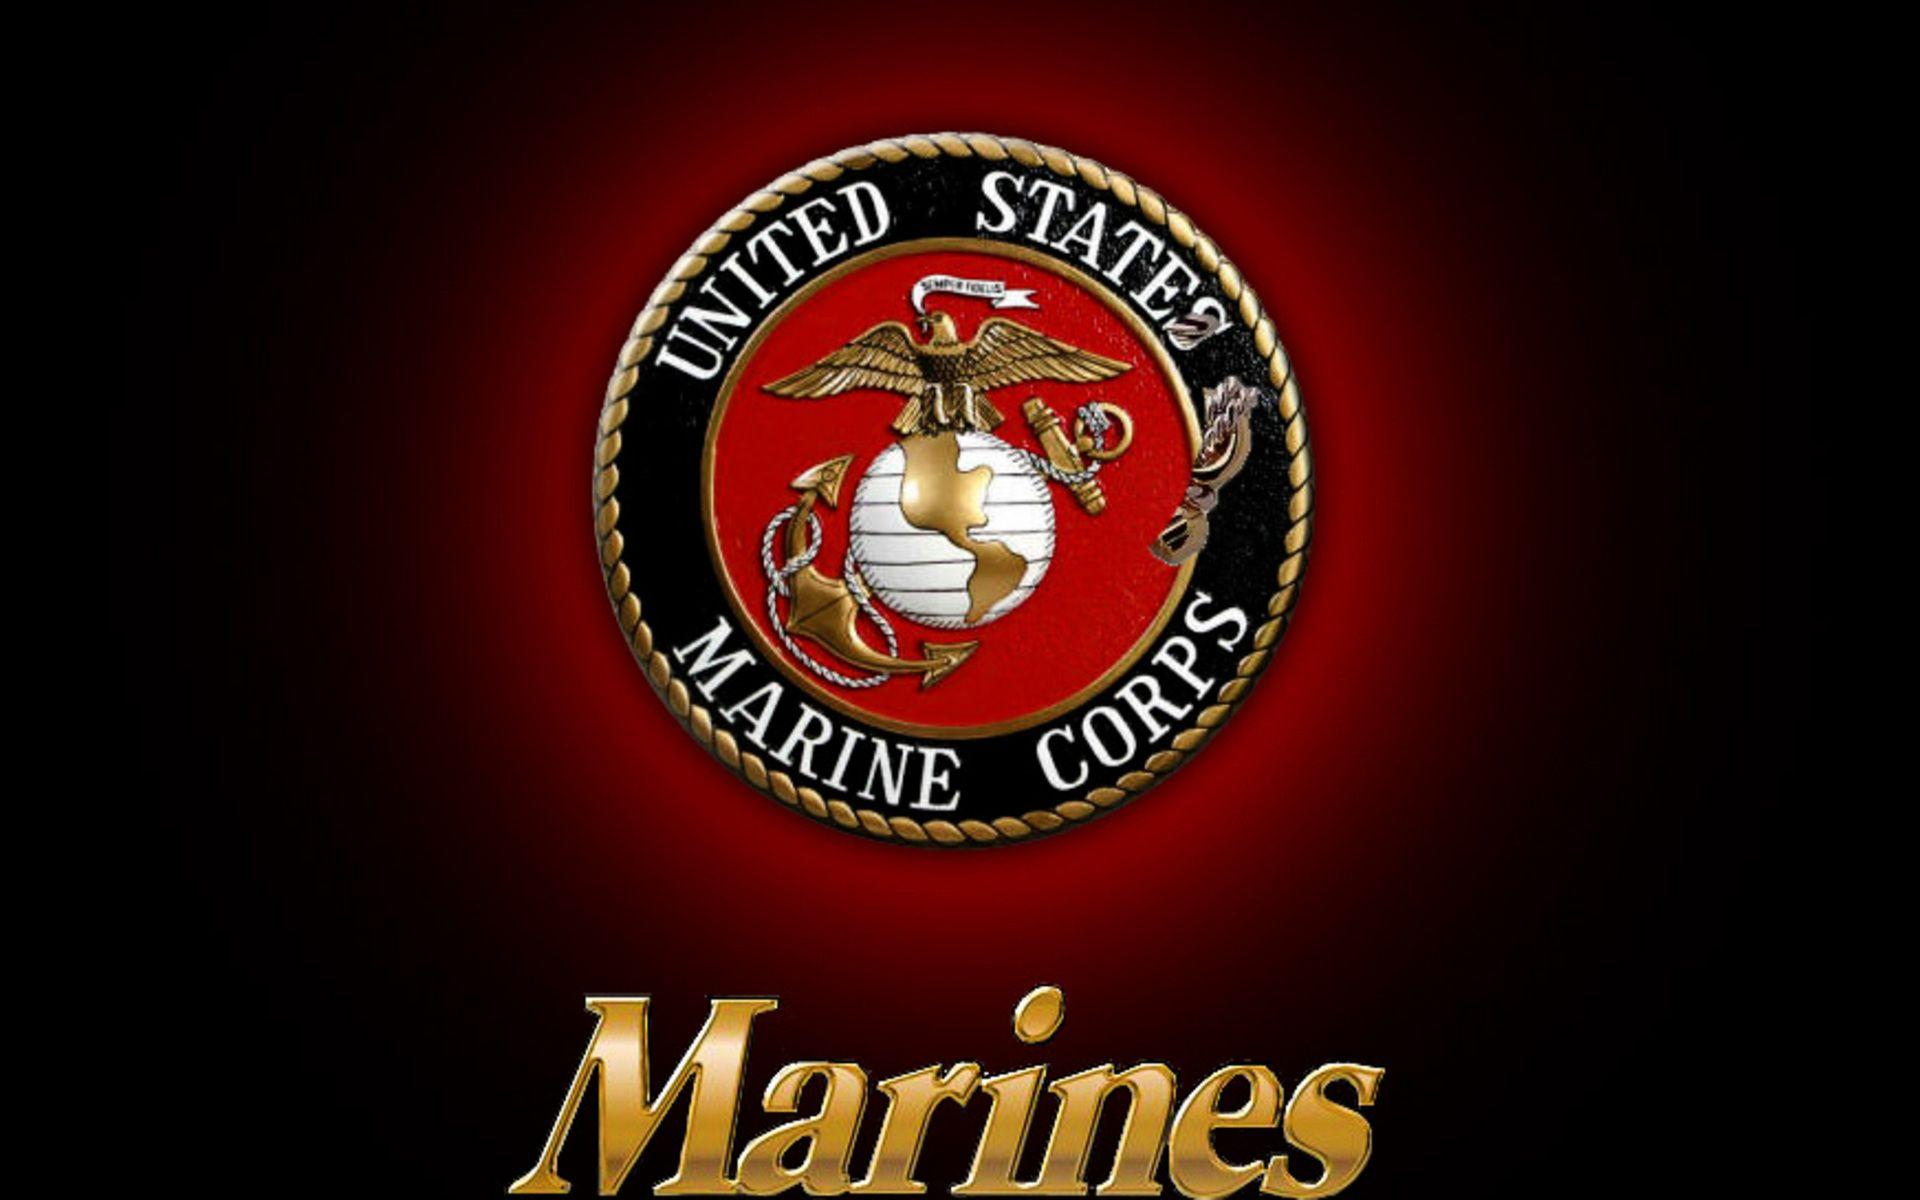 Hd Wallpapers Marine Corps Semper Fi 340 X 270 13 Kb Jpeg | HD ...